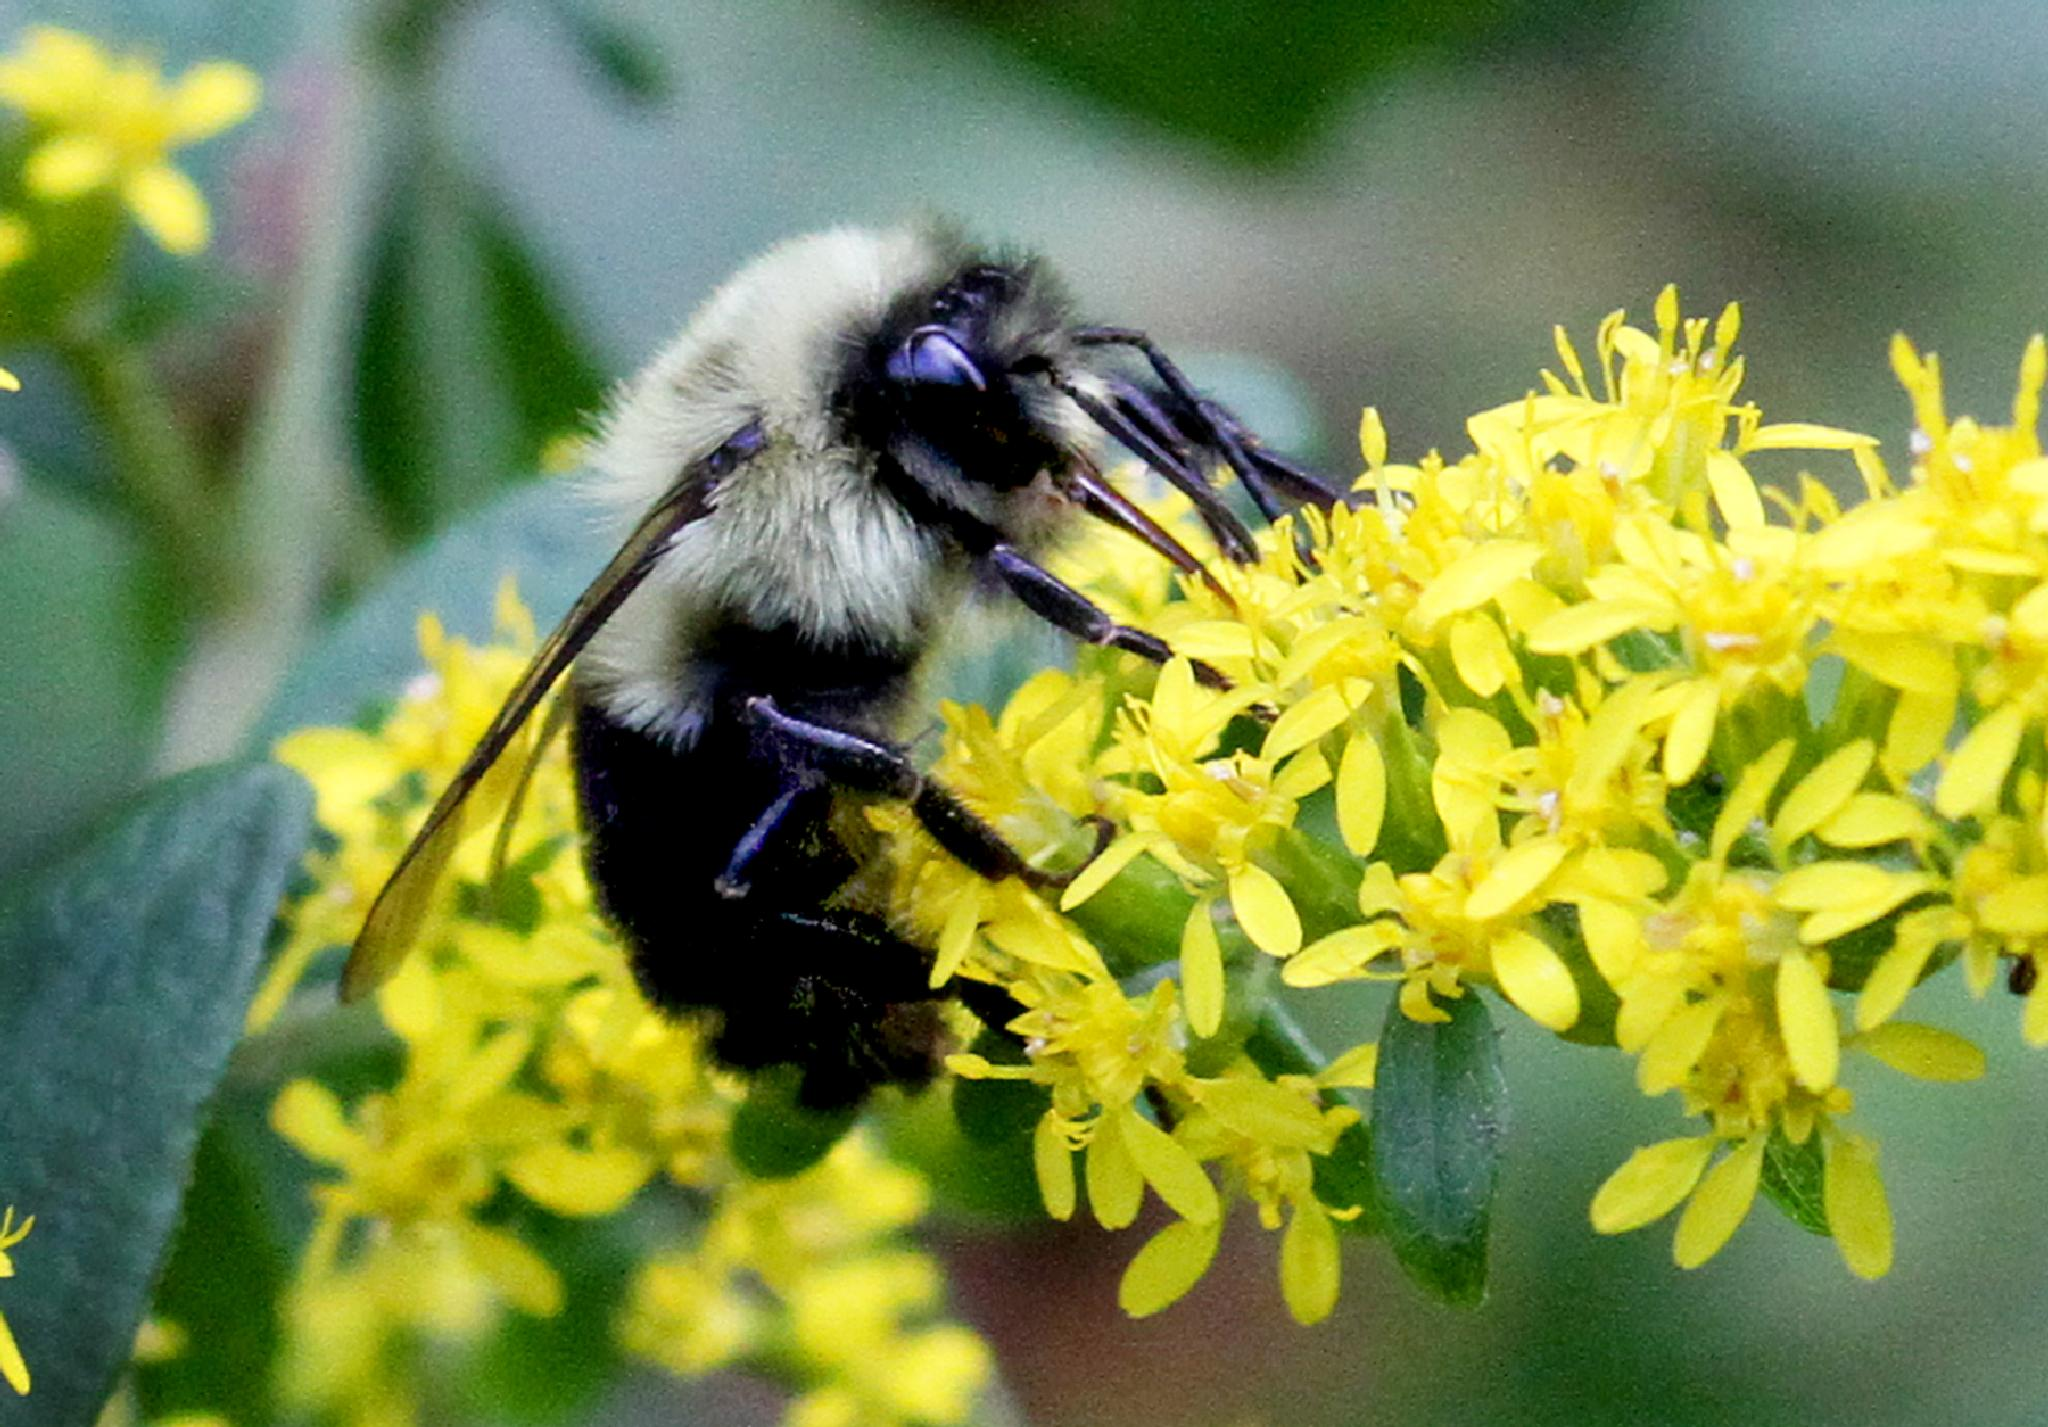 Bumbles by James Means